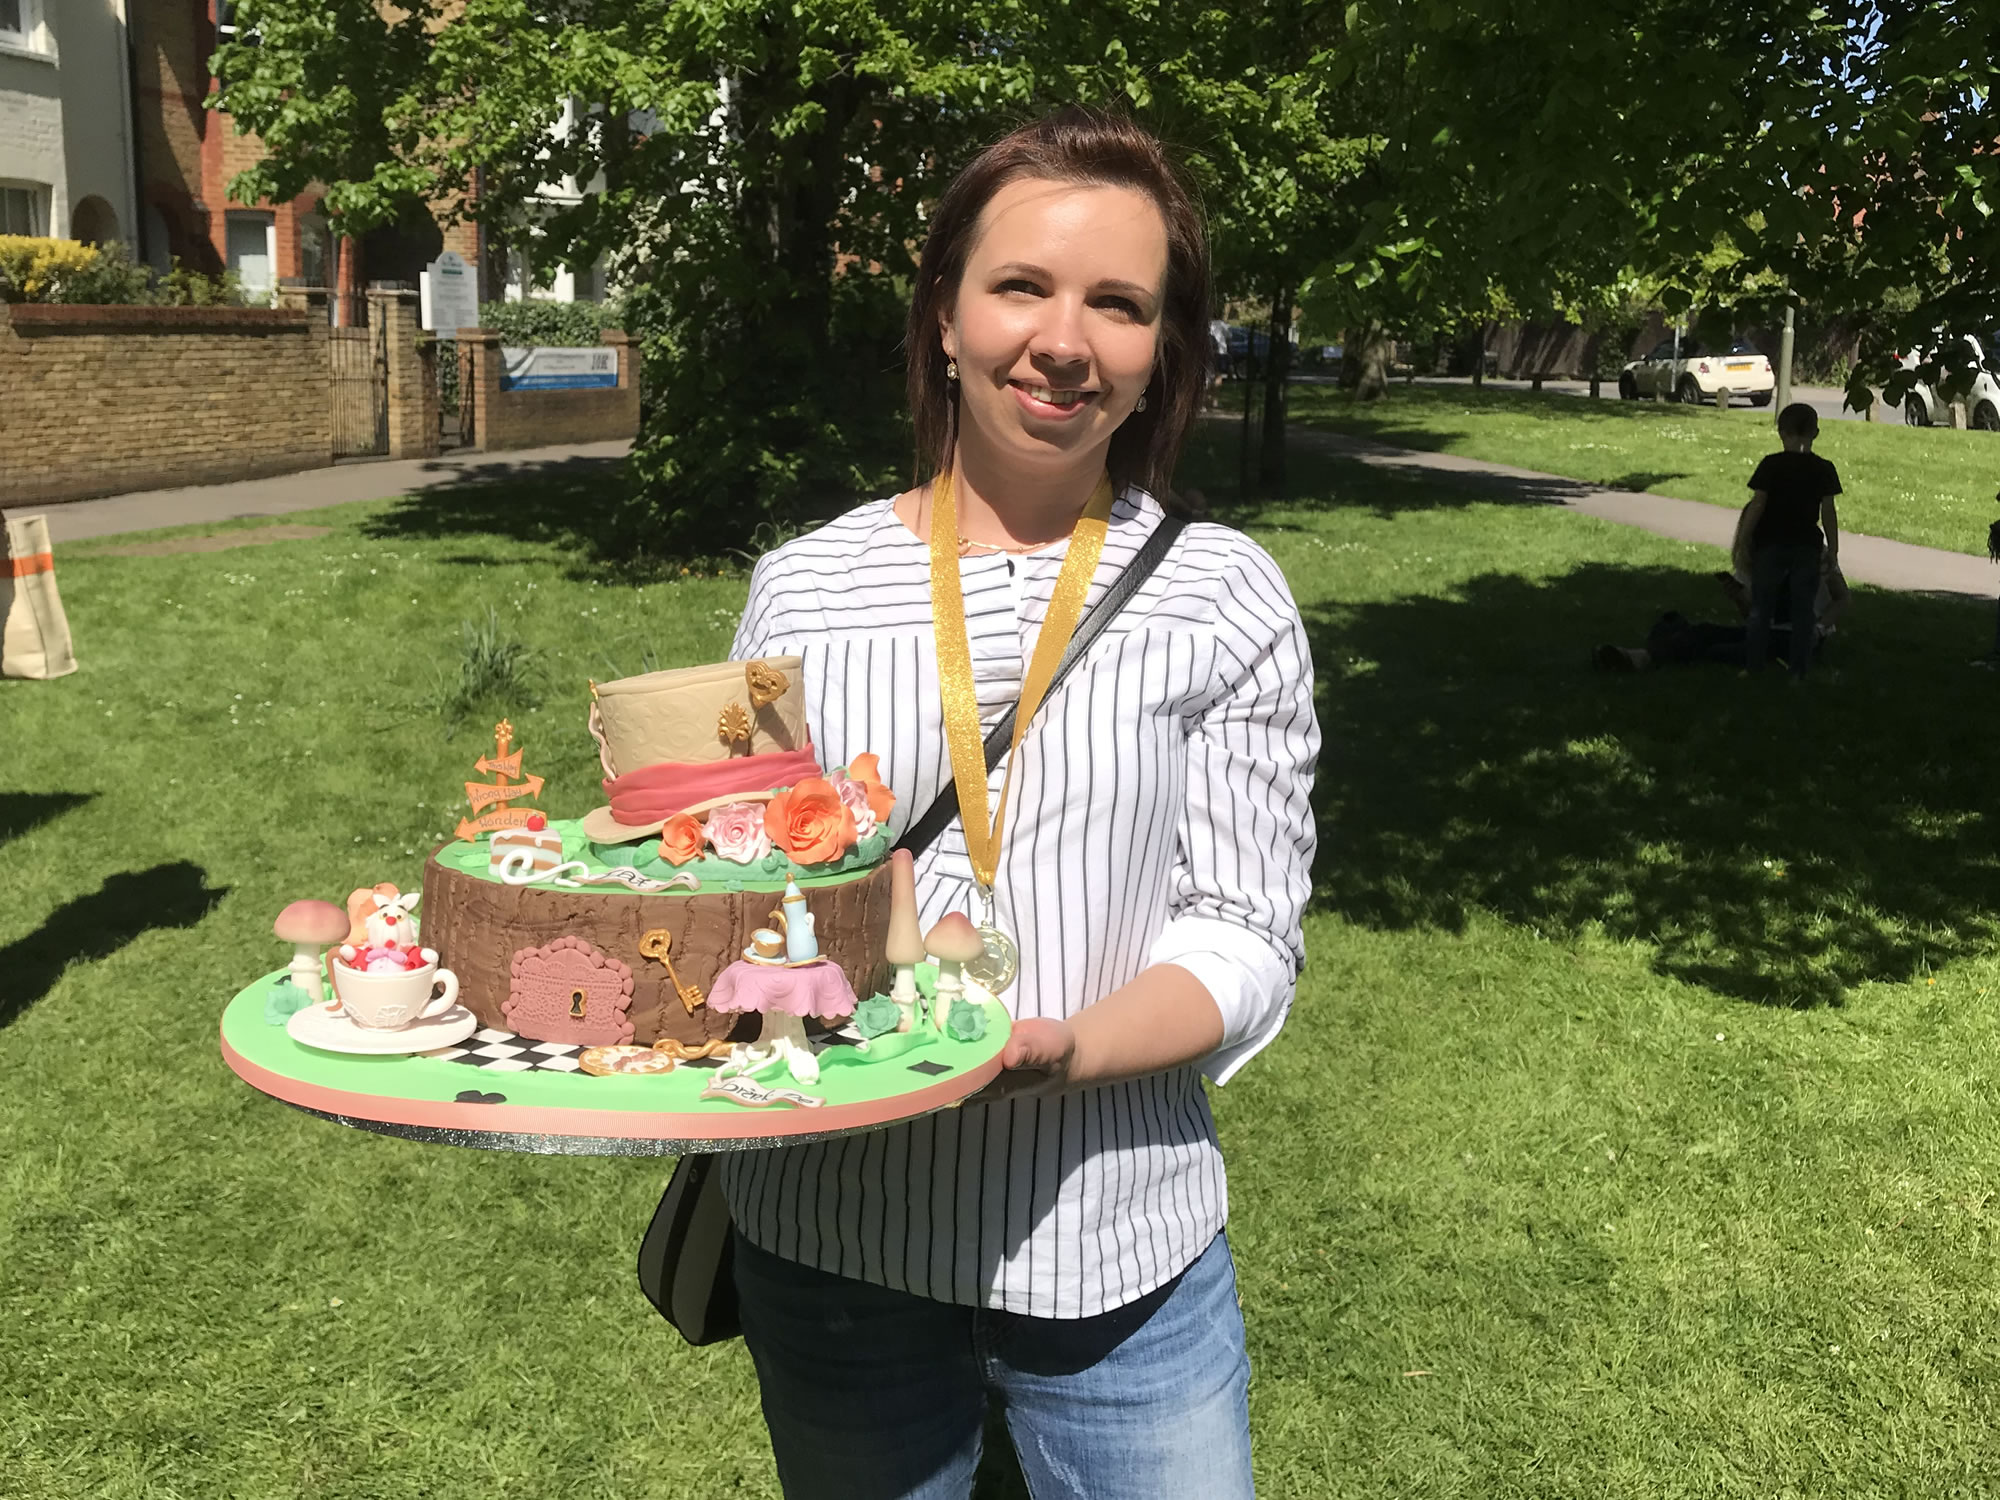 Great Weybridge Cake Off Best In Show Winner - Anna With Mad Hatters Tea Party Themed Celebration Cake